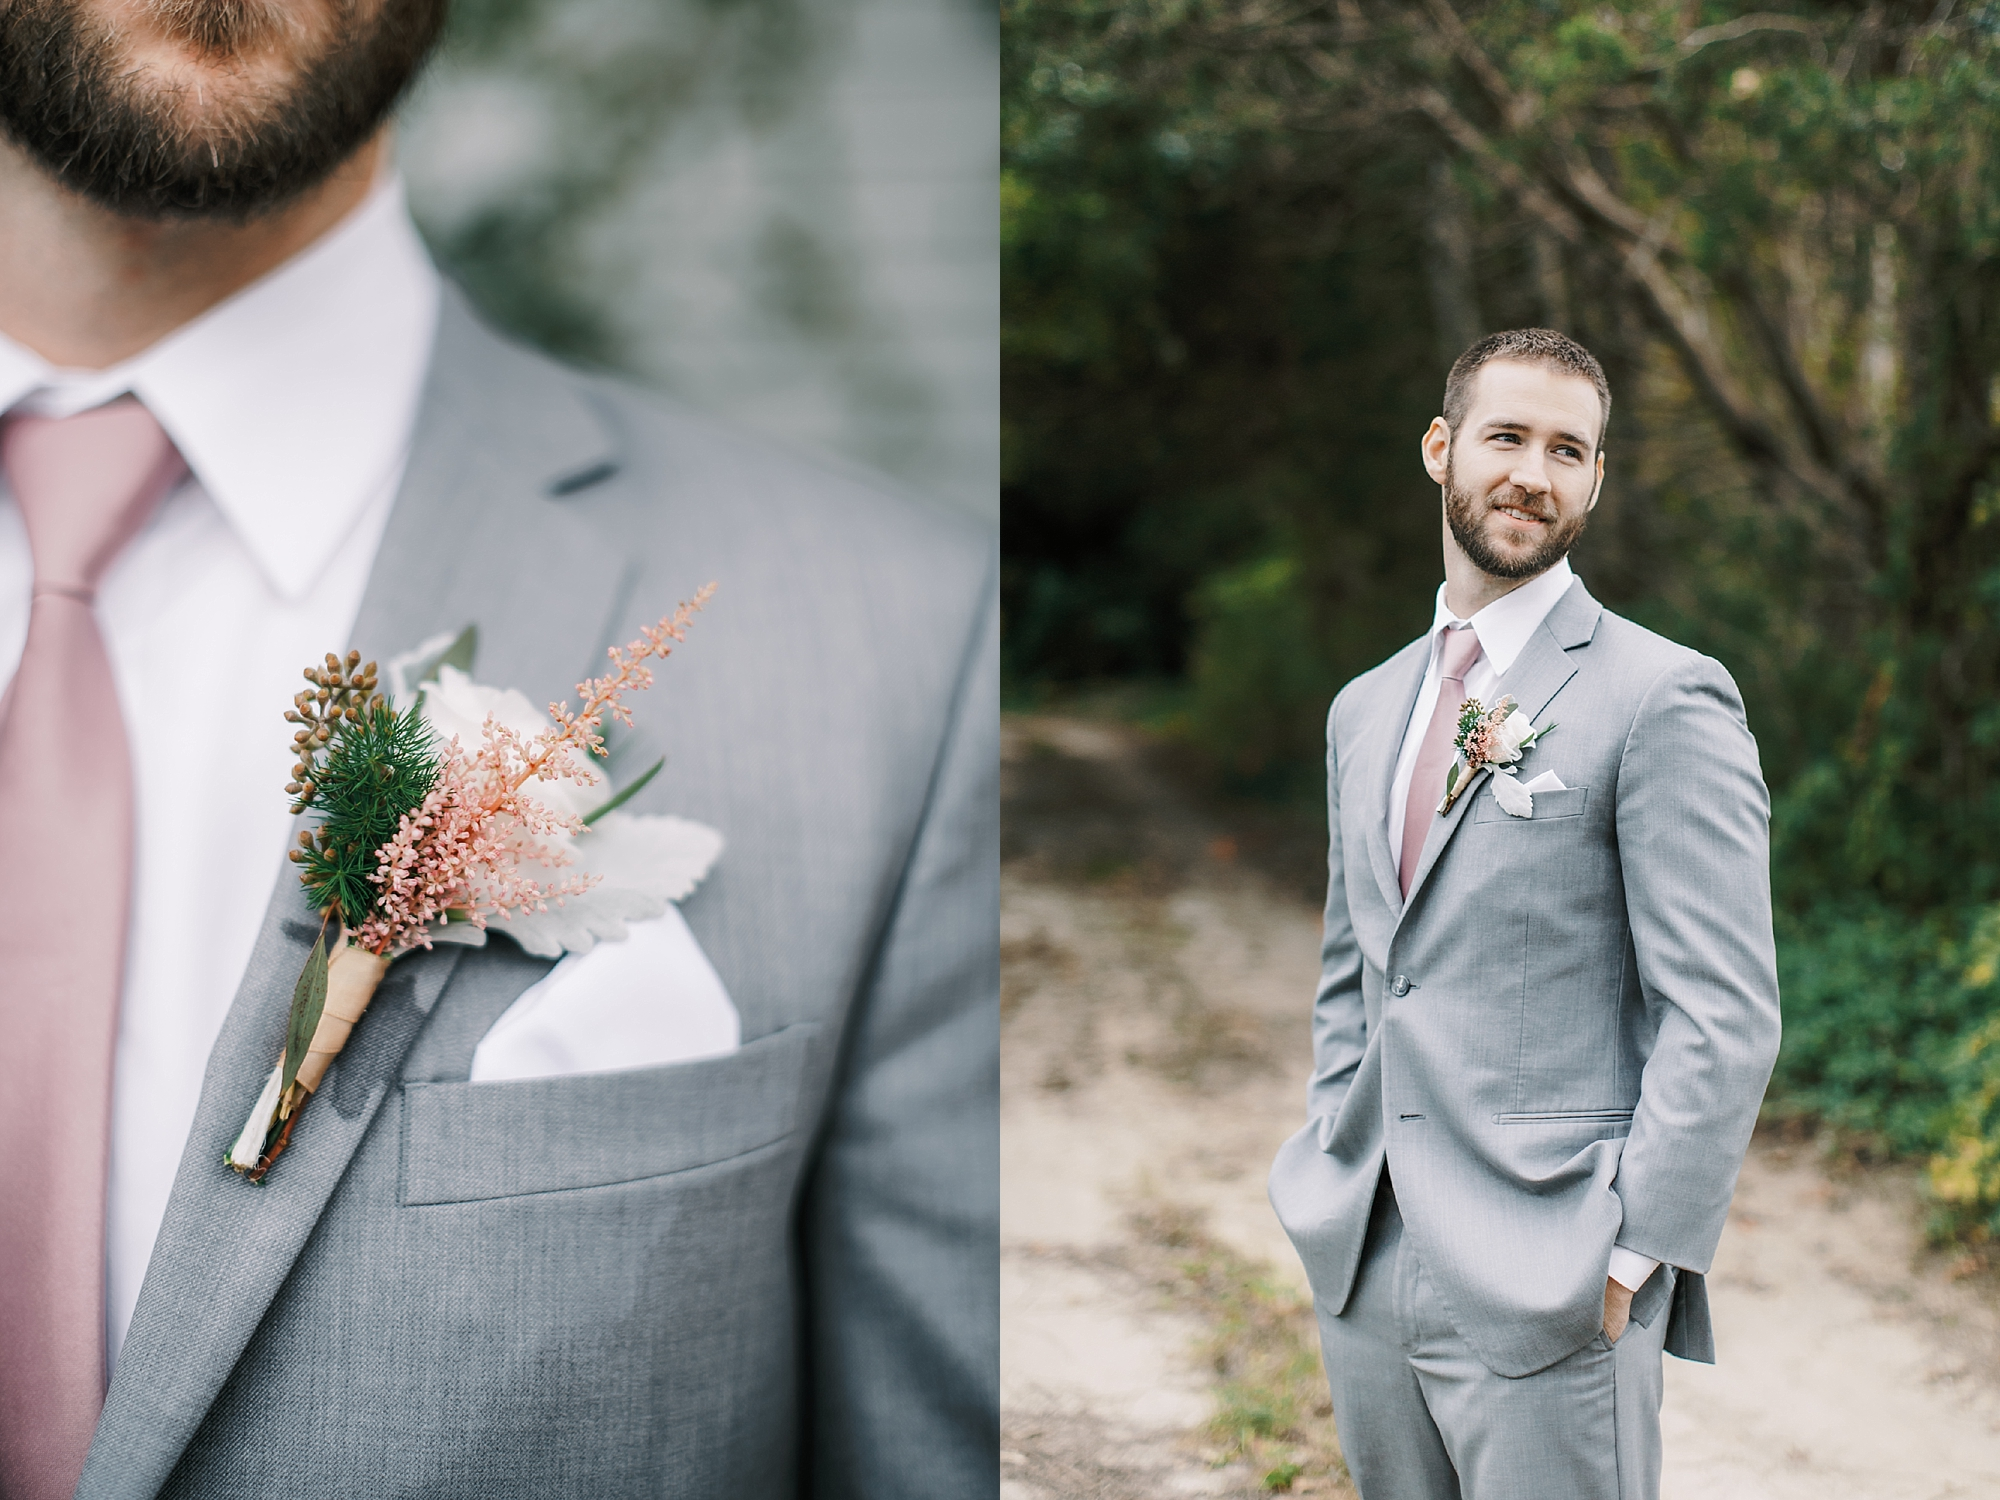 Sweet Garden Wedding Photography Abbie Holmes Estate in Cape May NJ by Magdalena Studios 0020.